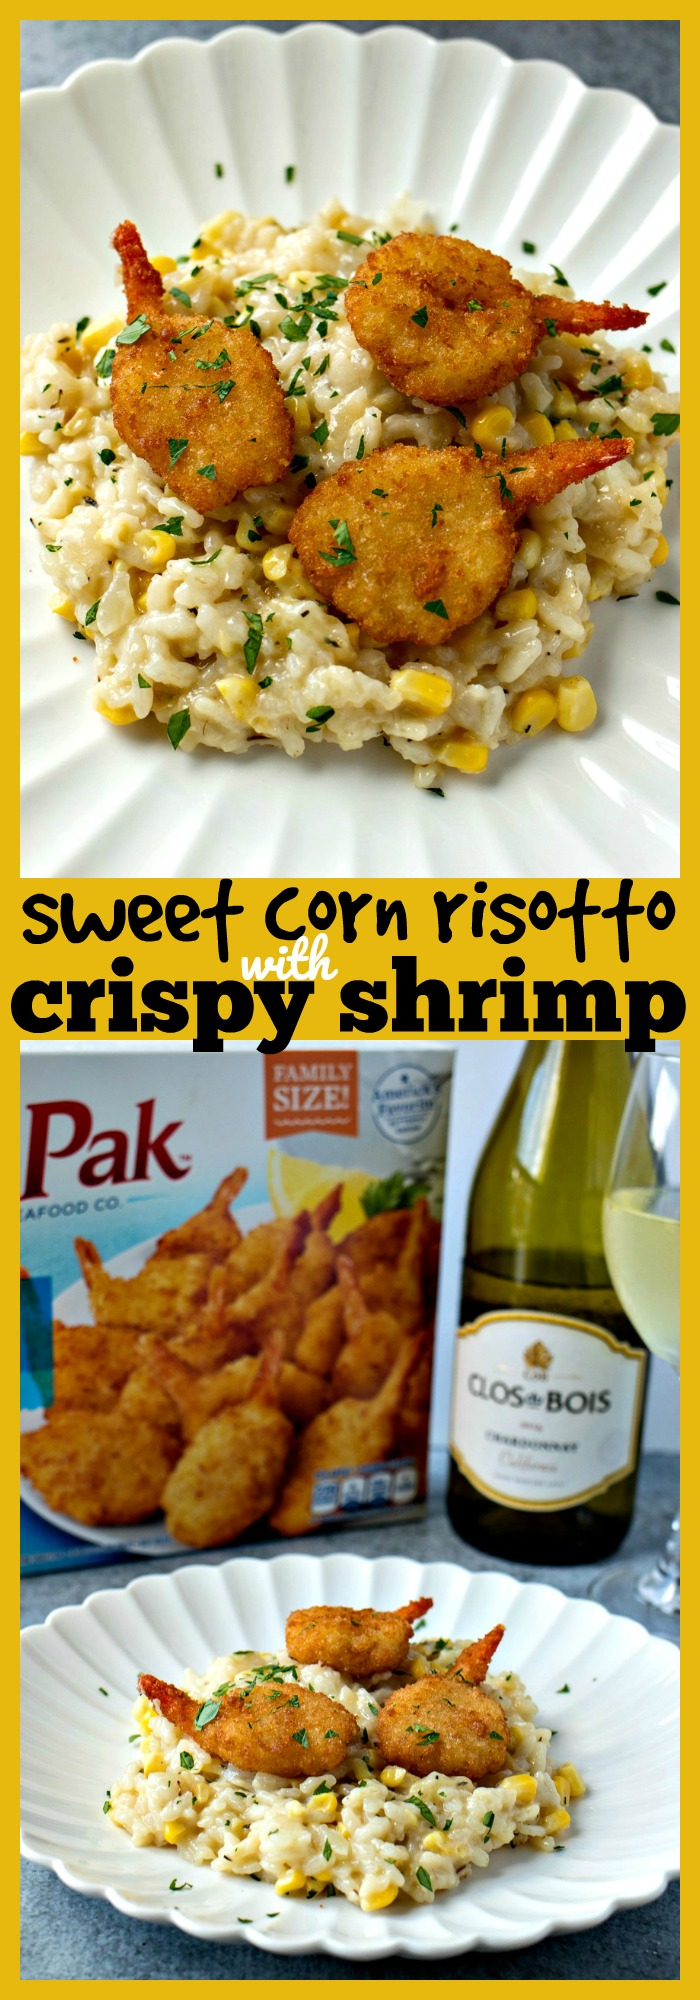 Sweet Corn Risotto with Crispy Shrimp photo collage